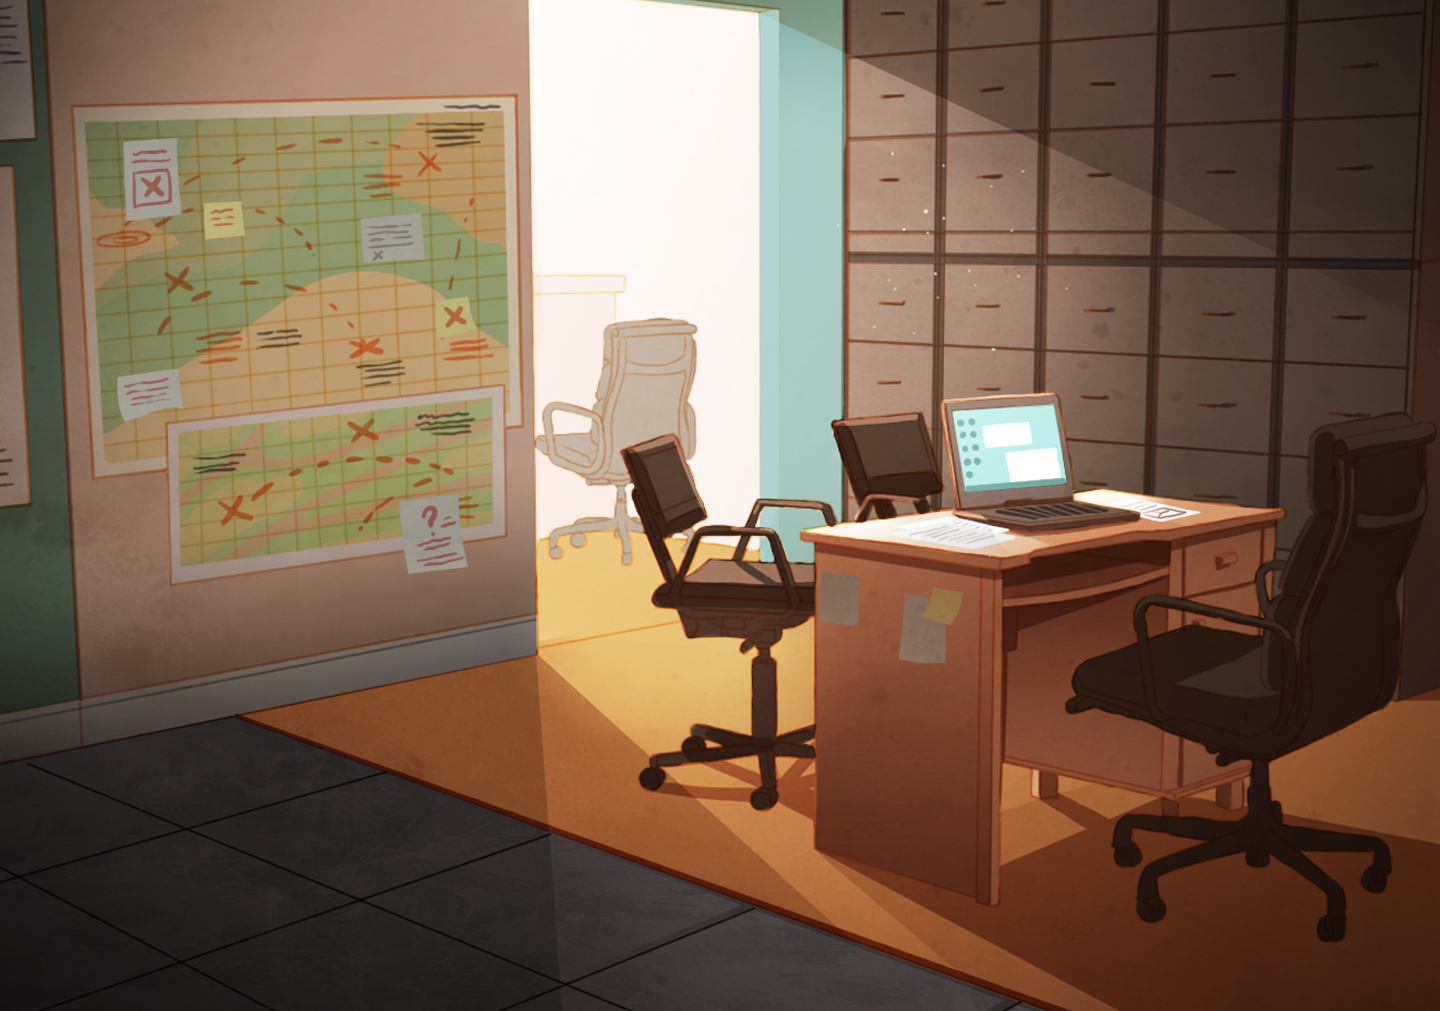 Background 5: Office 2